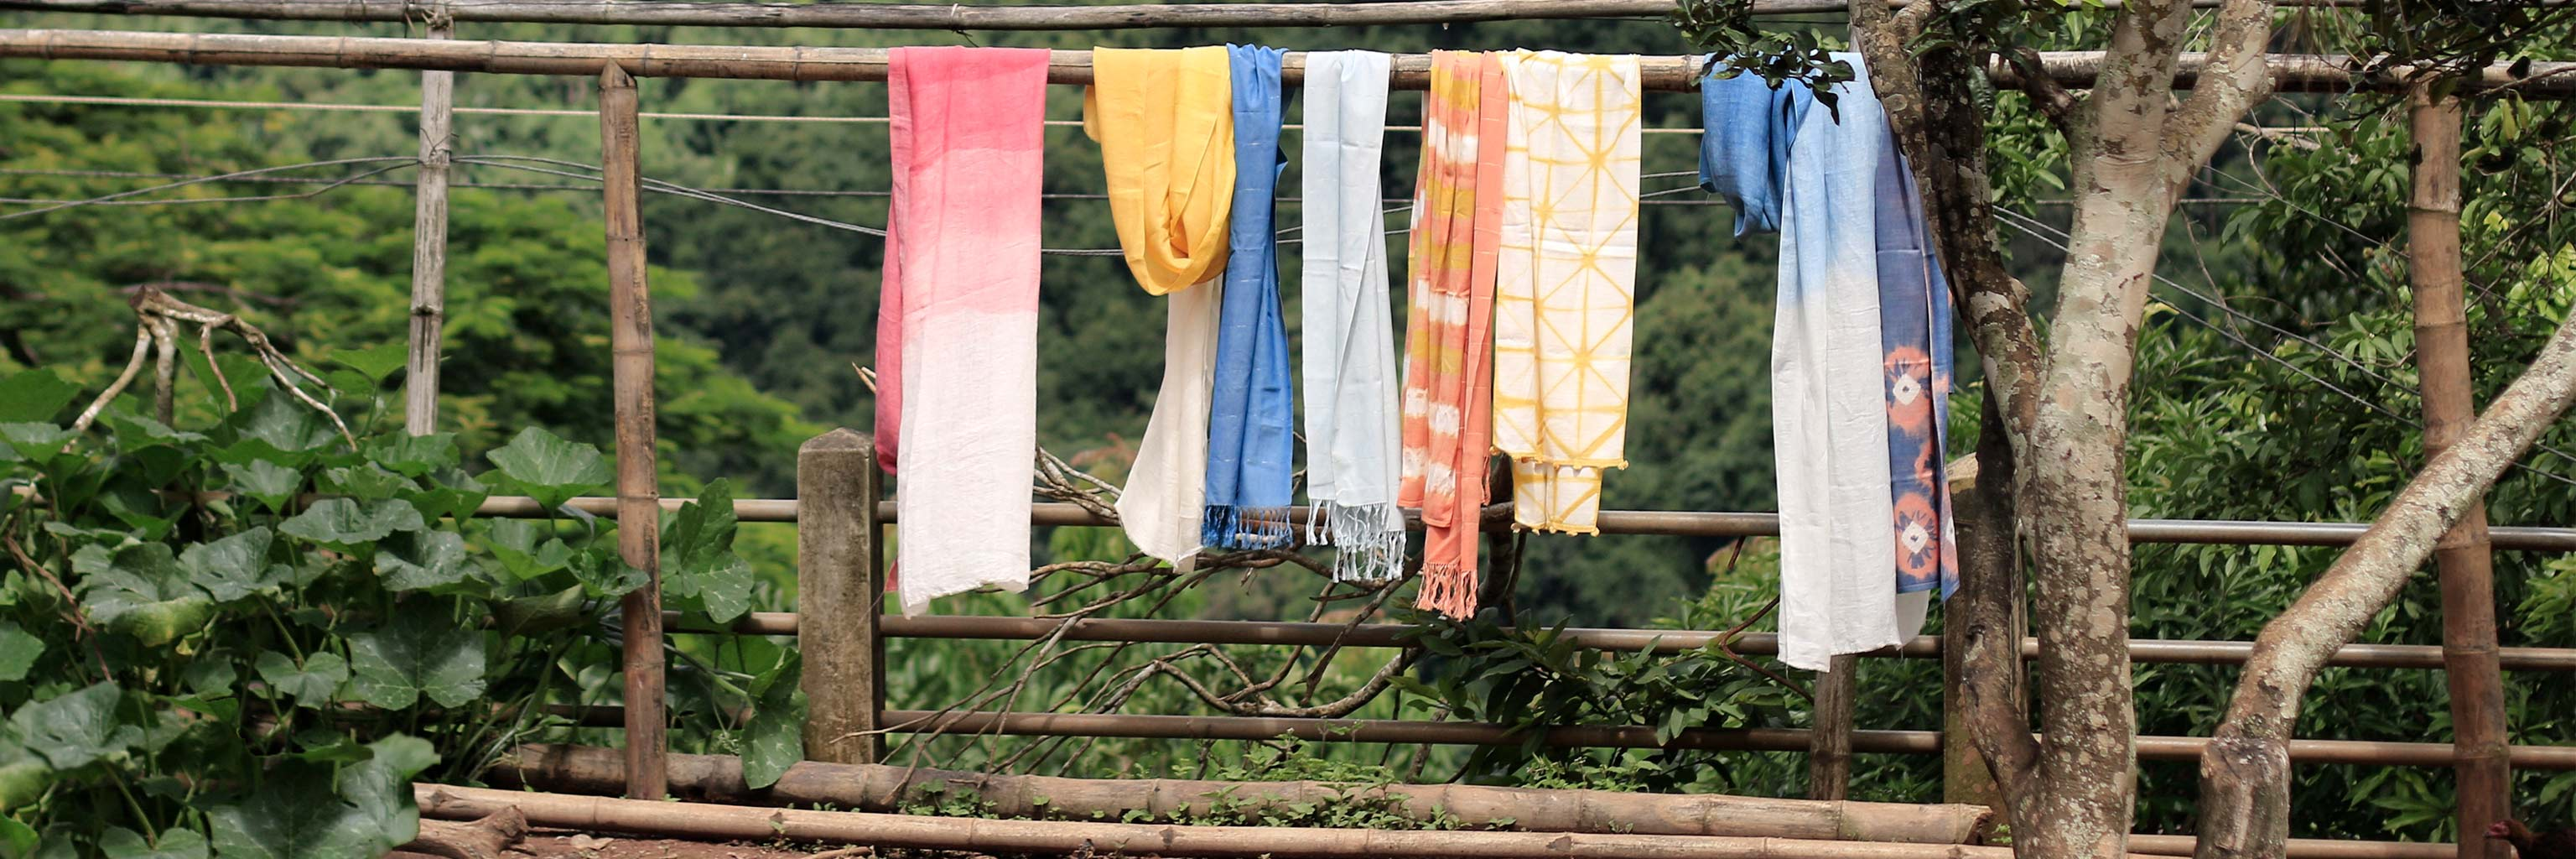 Clothes hanging abroad with a view of the landscape